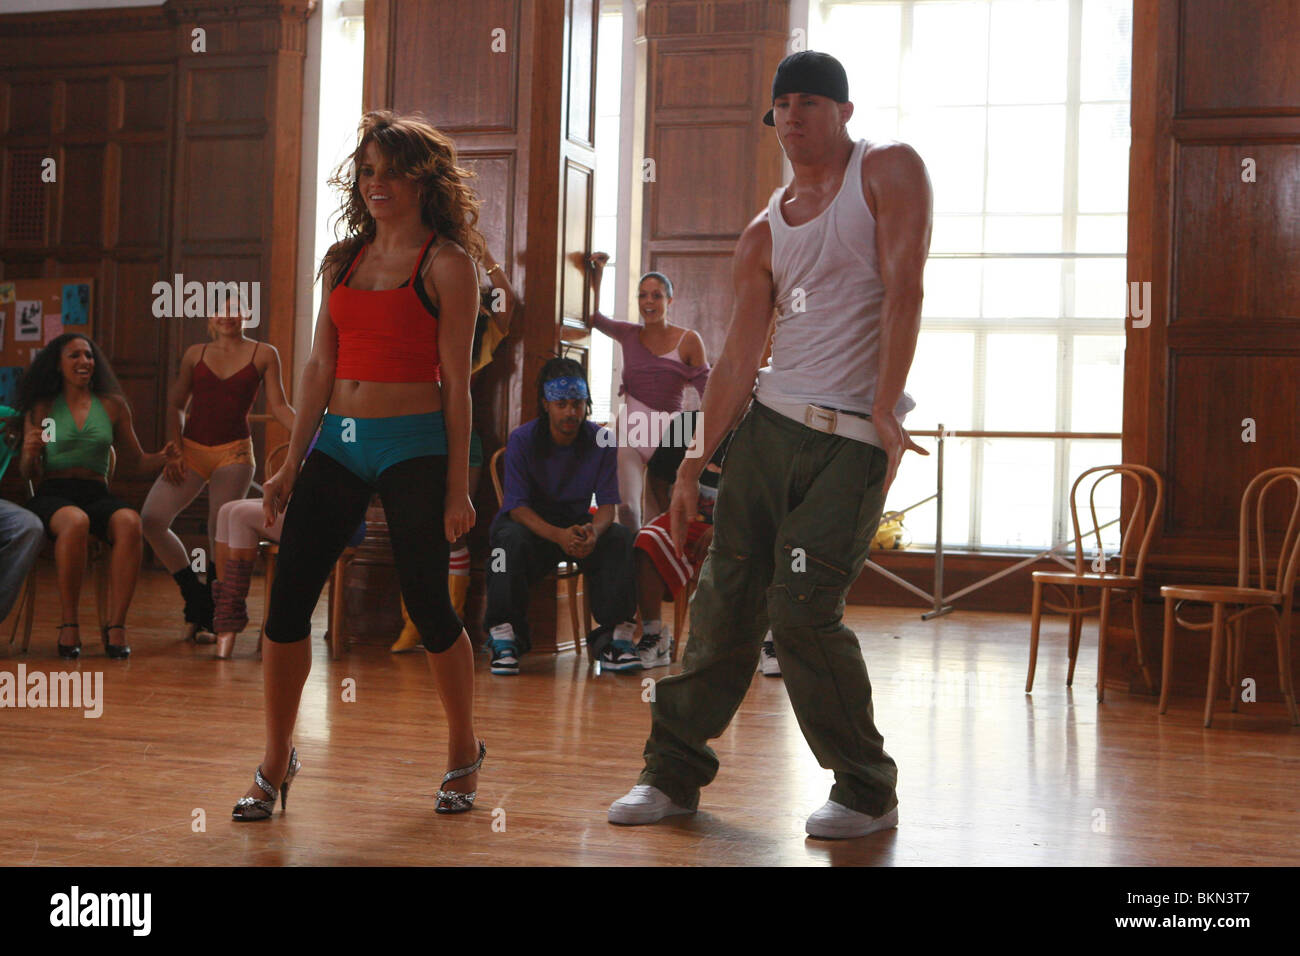 STEP UP (2006) CHANNING TATUM SEPU 001-30 Stockbild